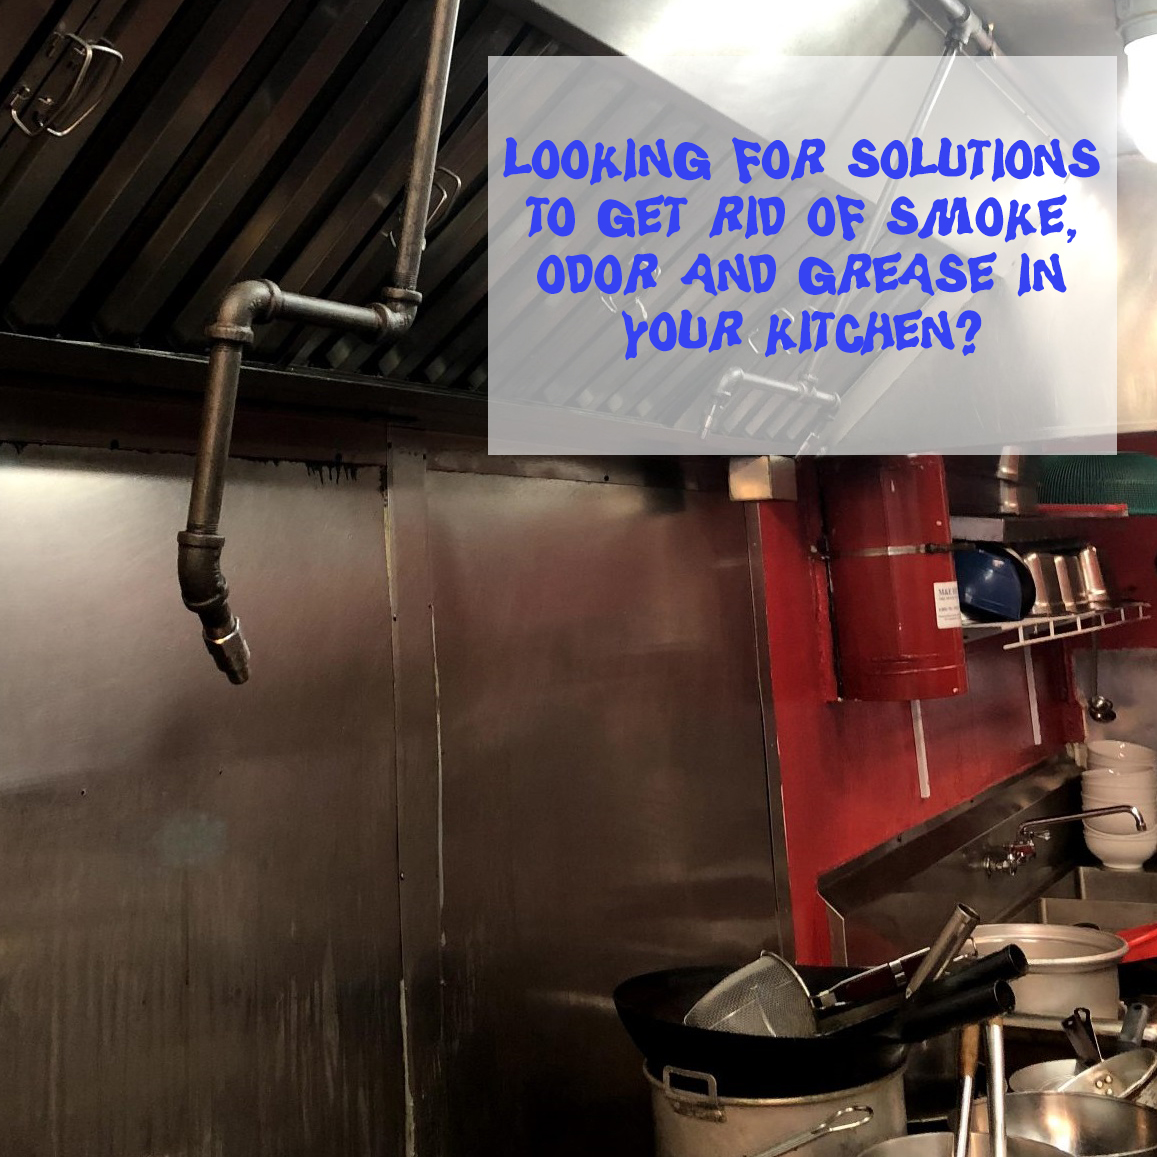 Looking for Solutions to Get Rid of Smoke, Odor and Grease in Your Kitchen?